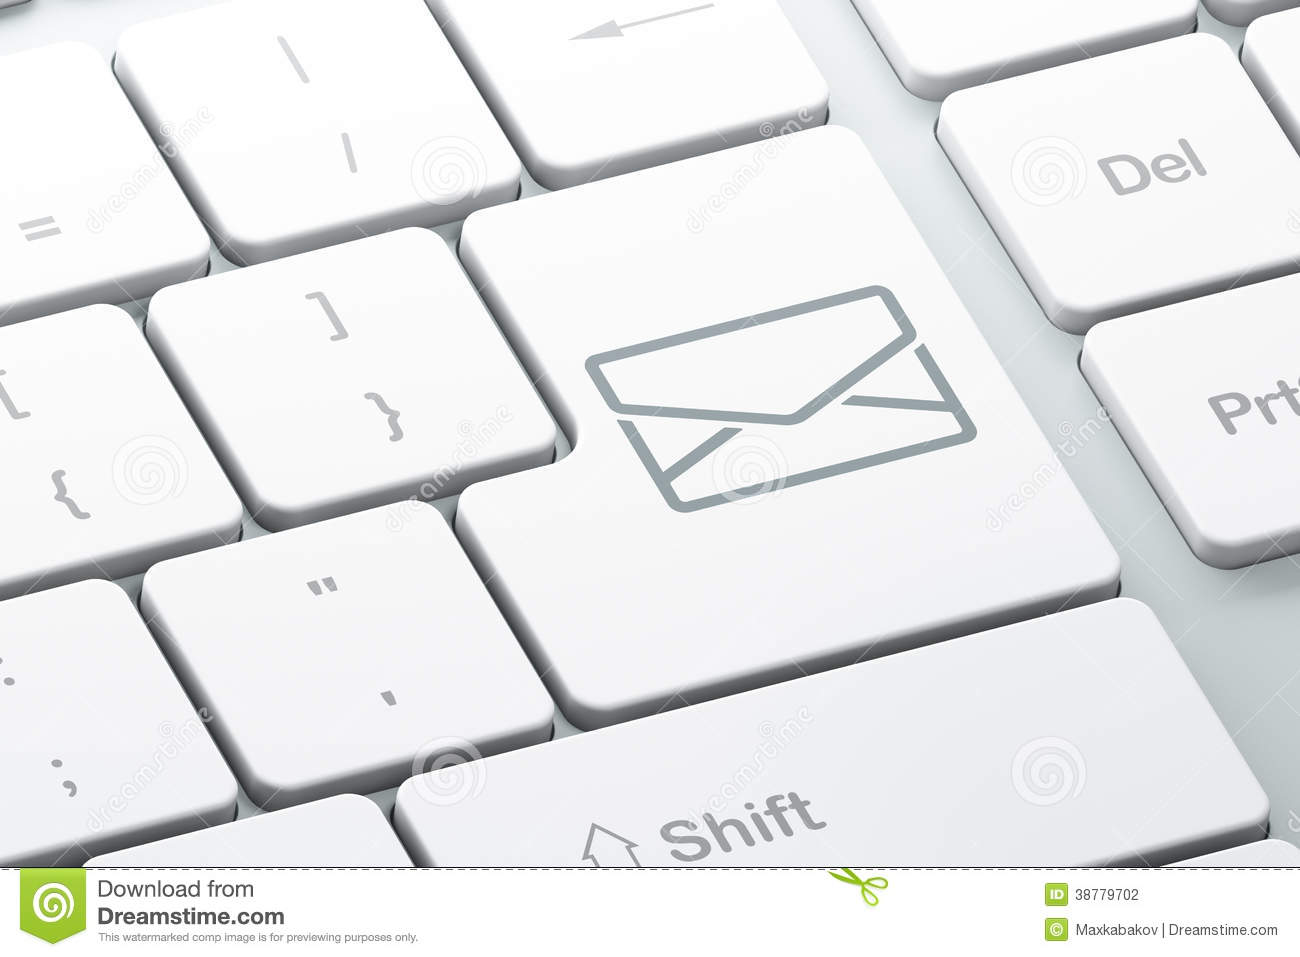 Email background image - Business Concept Email On Computer Keyboard Background Stock Photo